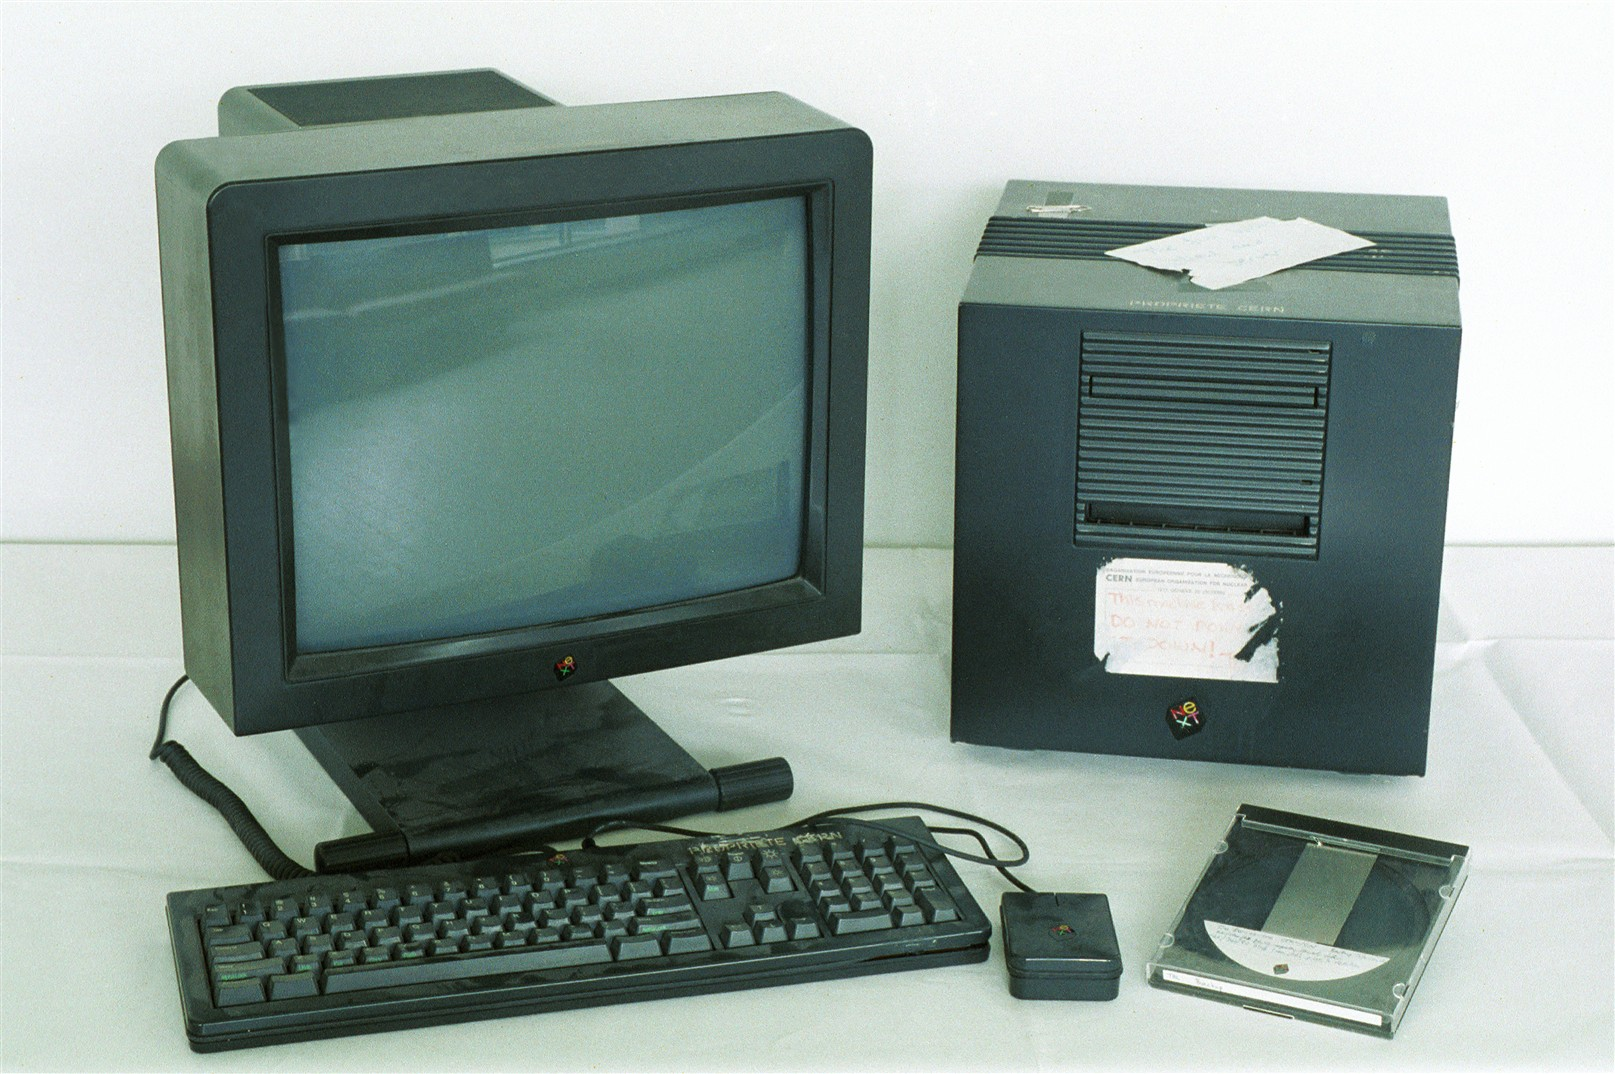 The first web server: this machine was used by Tim Berners-Lee in 1990 to develop and run the first WWW server, multi-media browser and web editor.